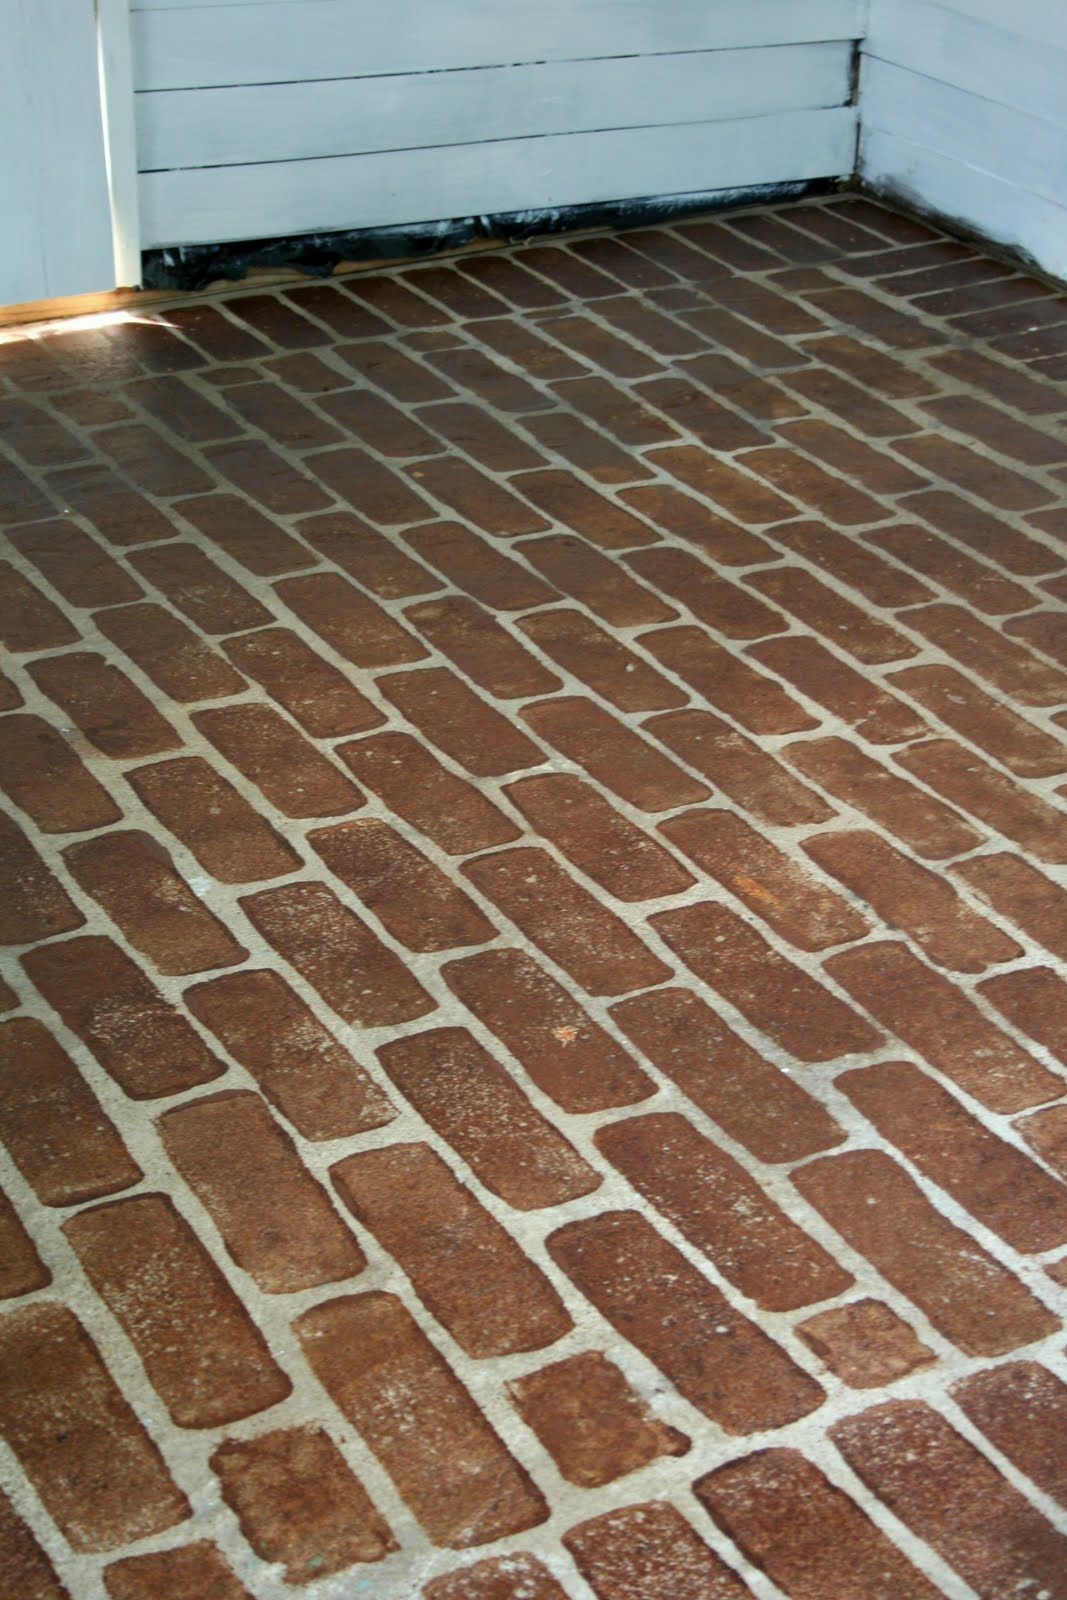 7 ways to add character to a concrete porch brick flooring 7 ways to add character to a concrete porch make a faux brick floor dailygadgetfo Image collections